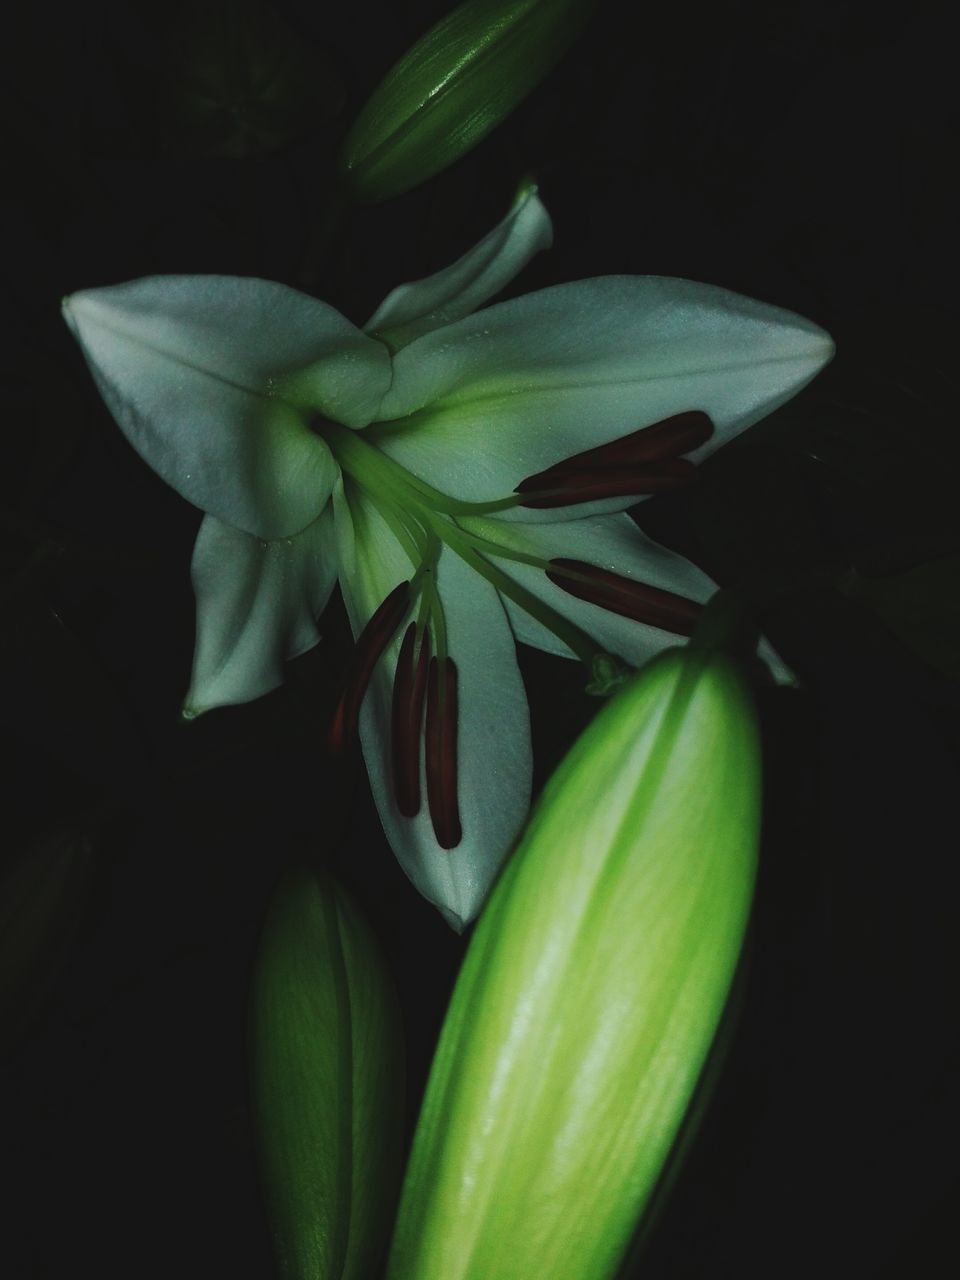 no people, green color, freshness, growth, petal, close-up, flower, nature, beauty in nature, leaf, fragility, flower head, day, outdoors